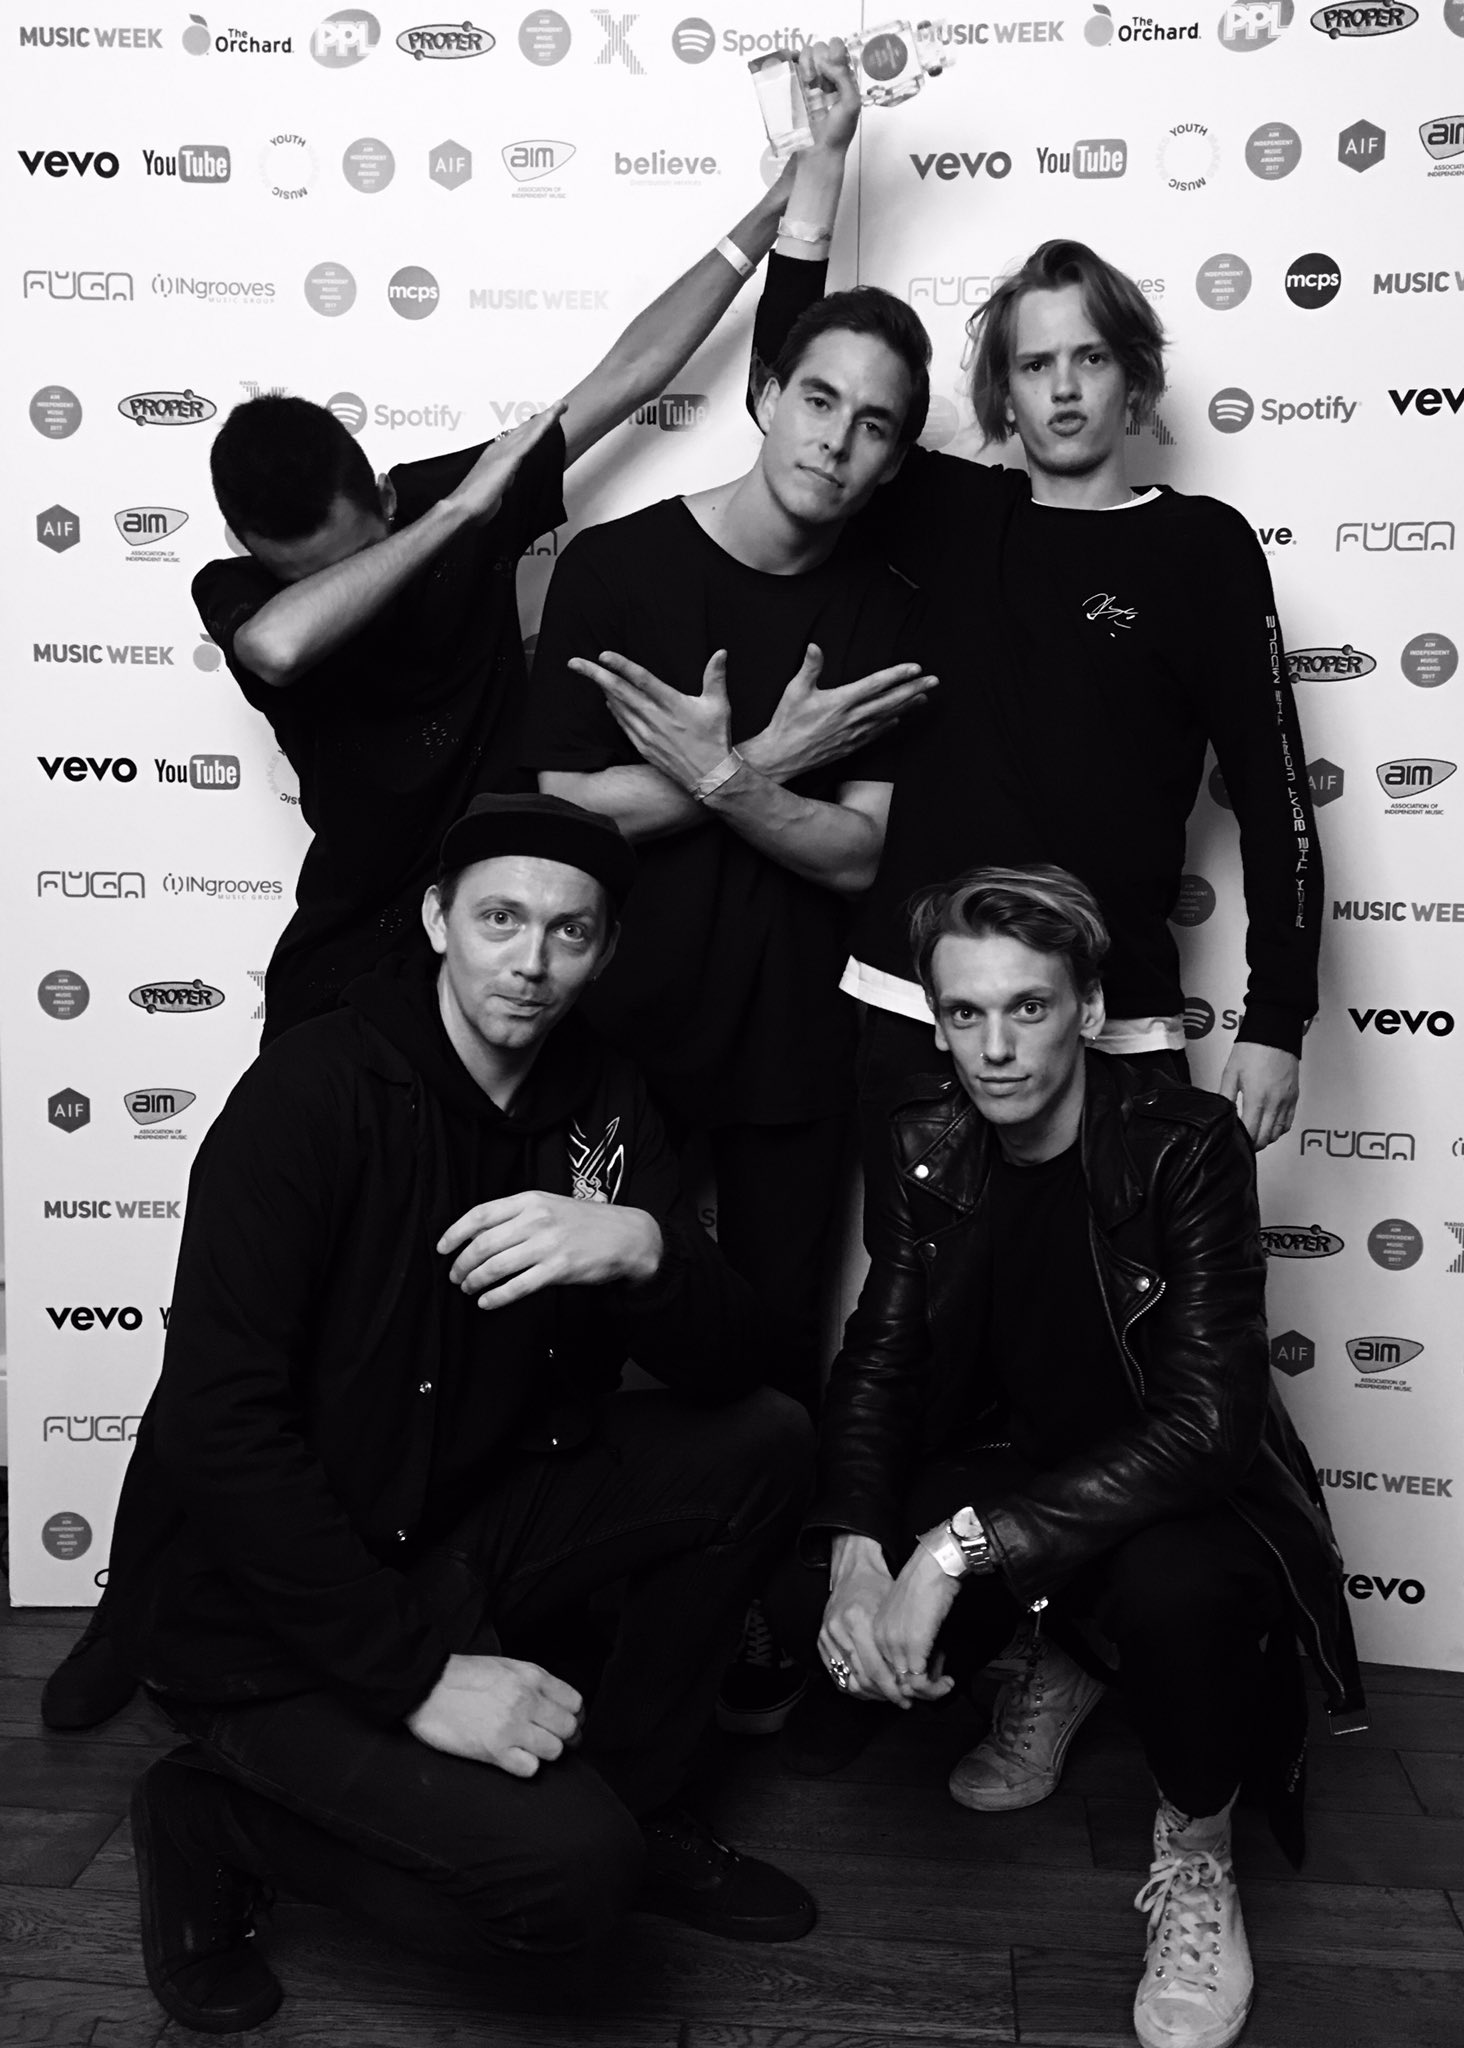 We just won the AIM Award for best Live Band! Whattt!???? Thank you so much. X https://t.co/e3VKkQs1eO